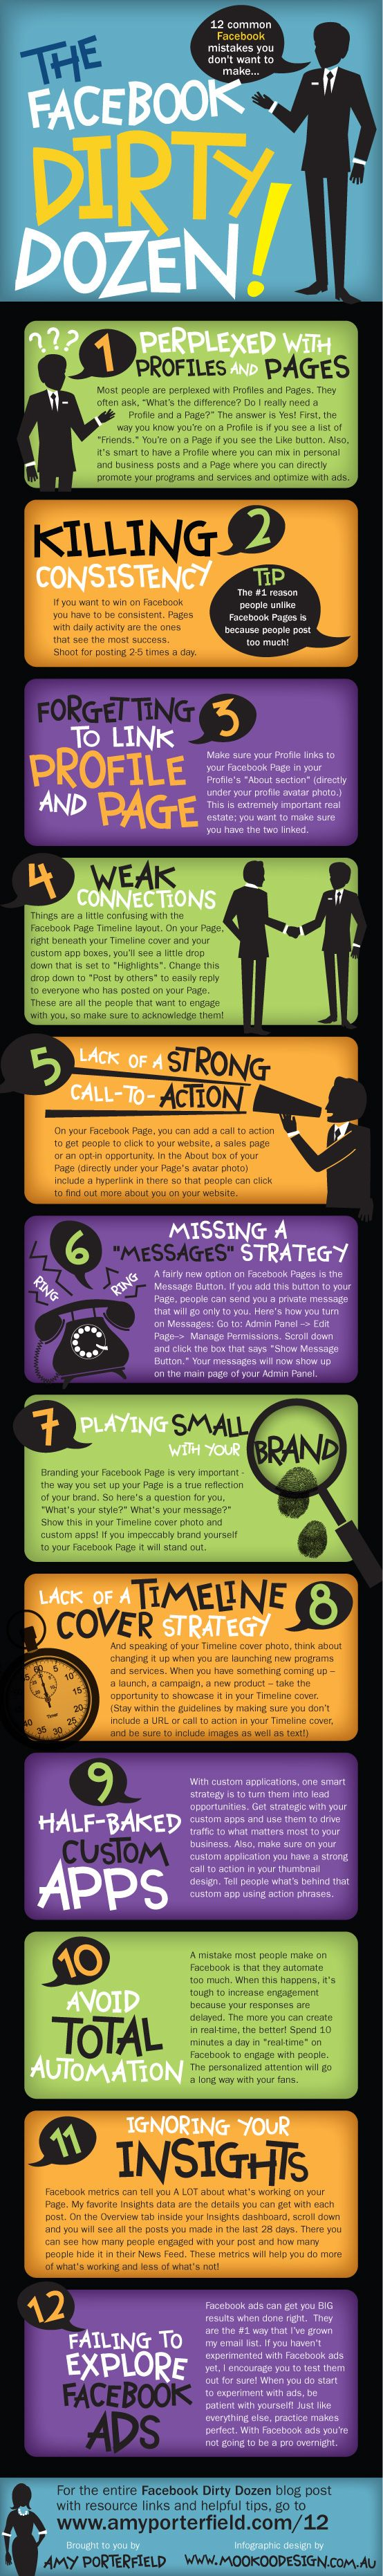 Great reminders >> The Facebook Dirty Dozen [Infographic] by @amyporterfield